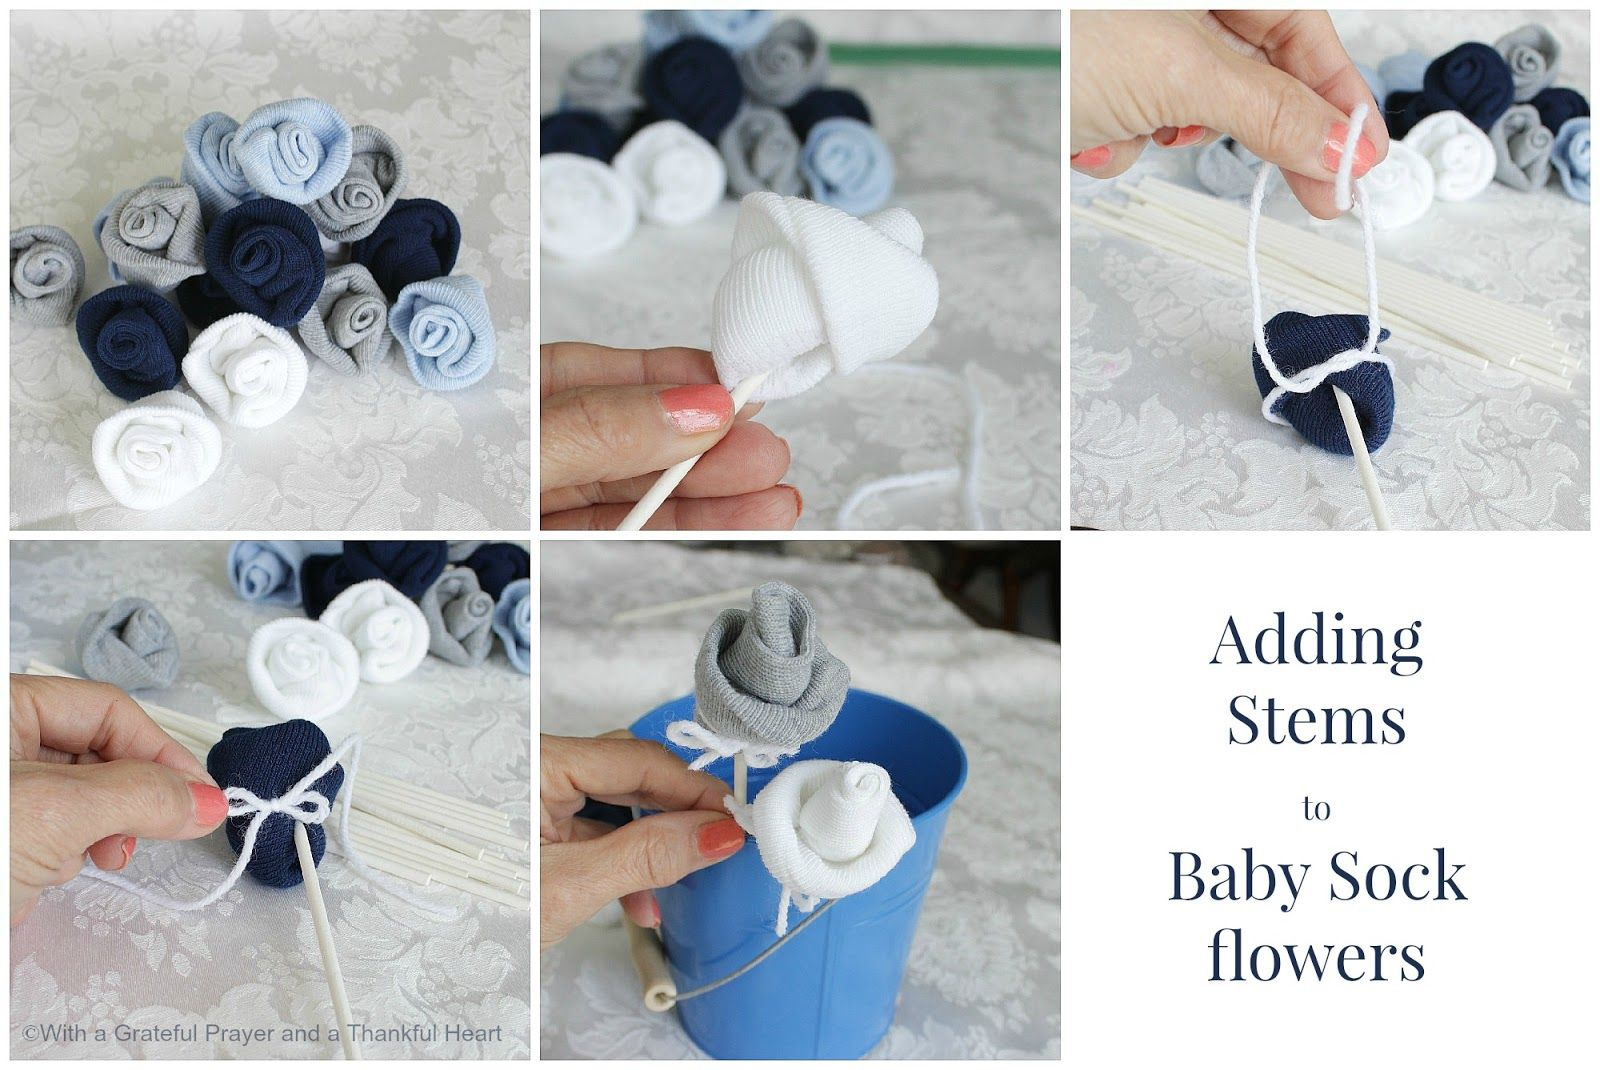 Baby socks rose bud flower bouquet flower bouquets diy baby baby socks rose bud flower bouquet negle Choice Image